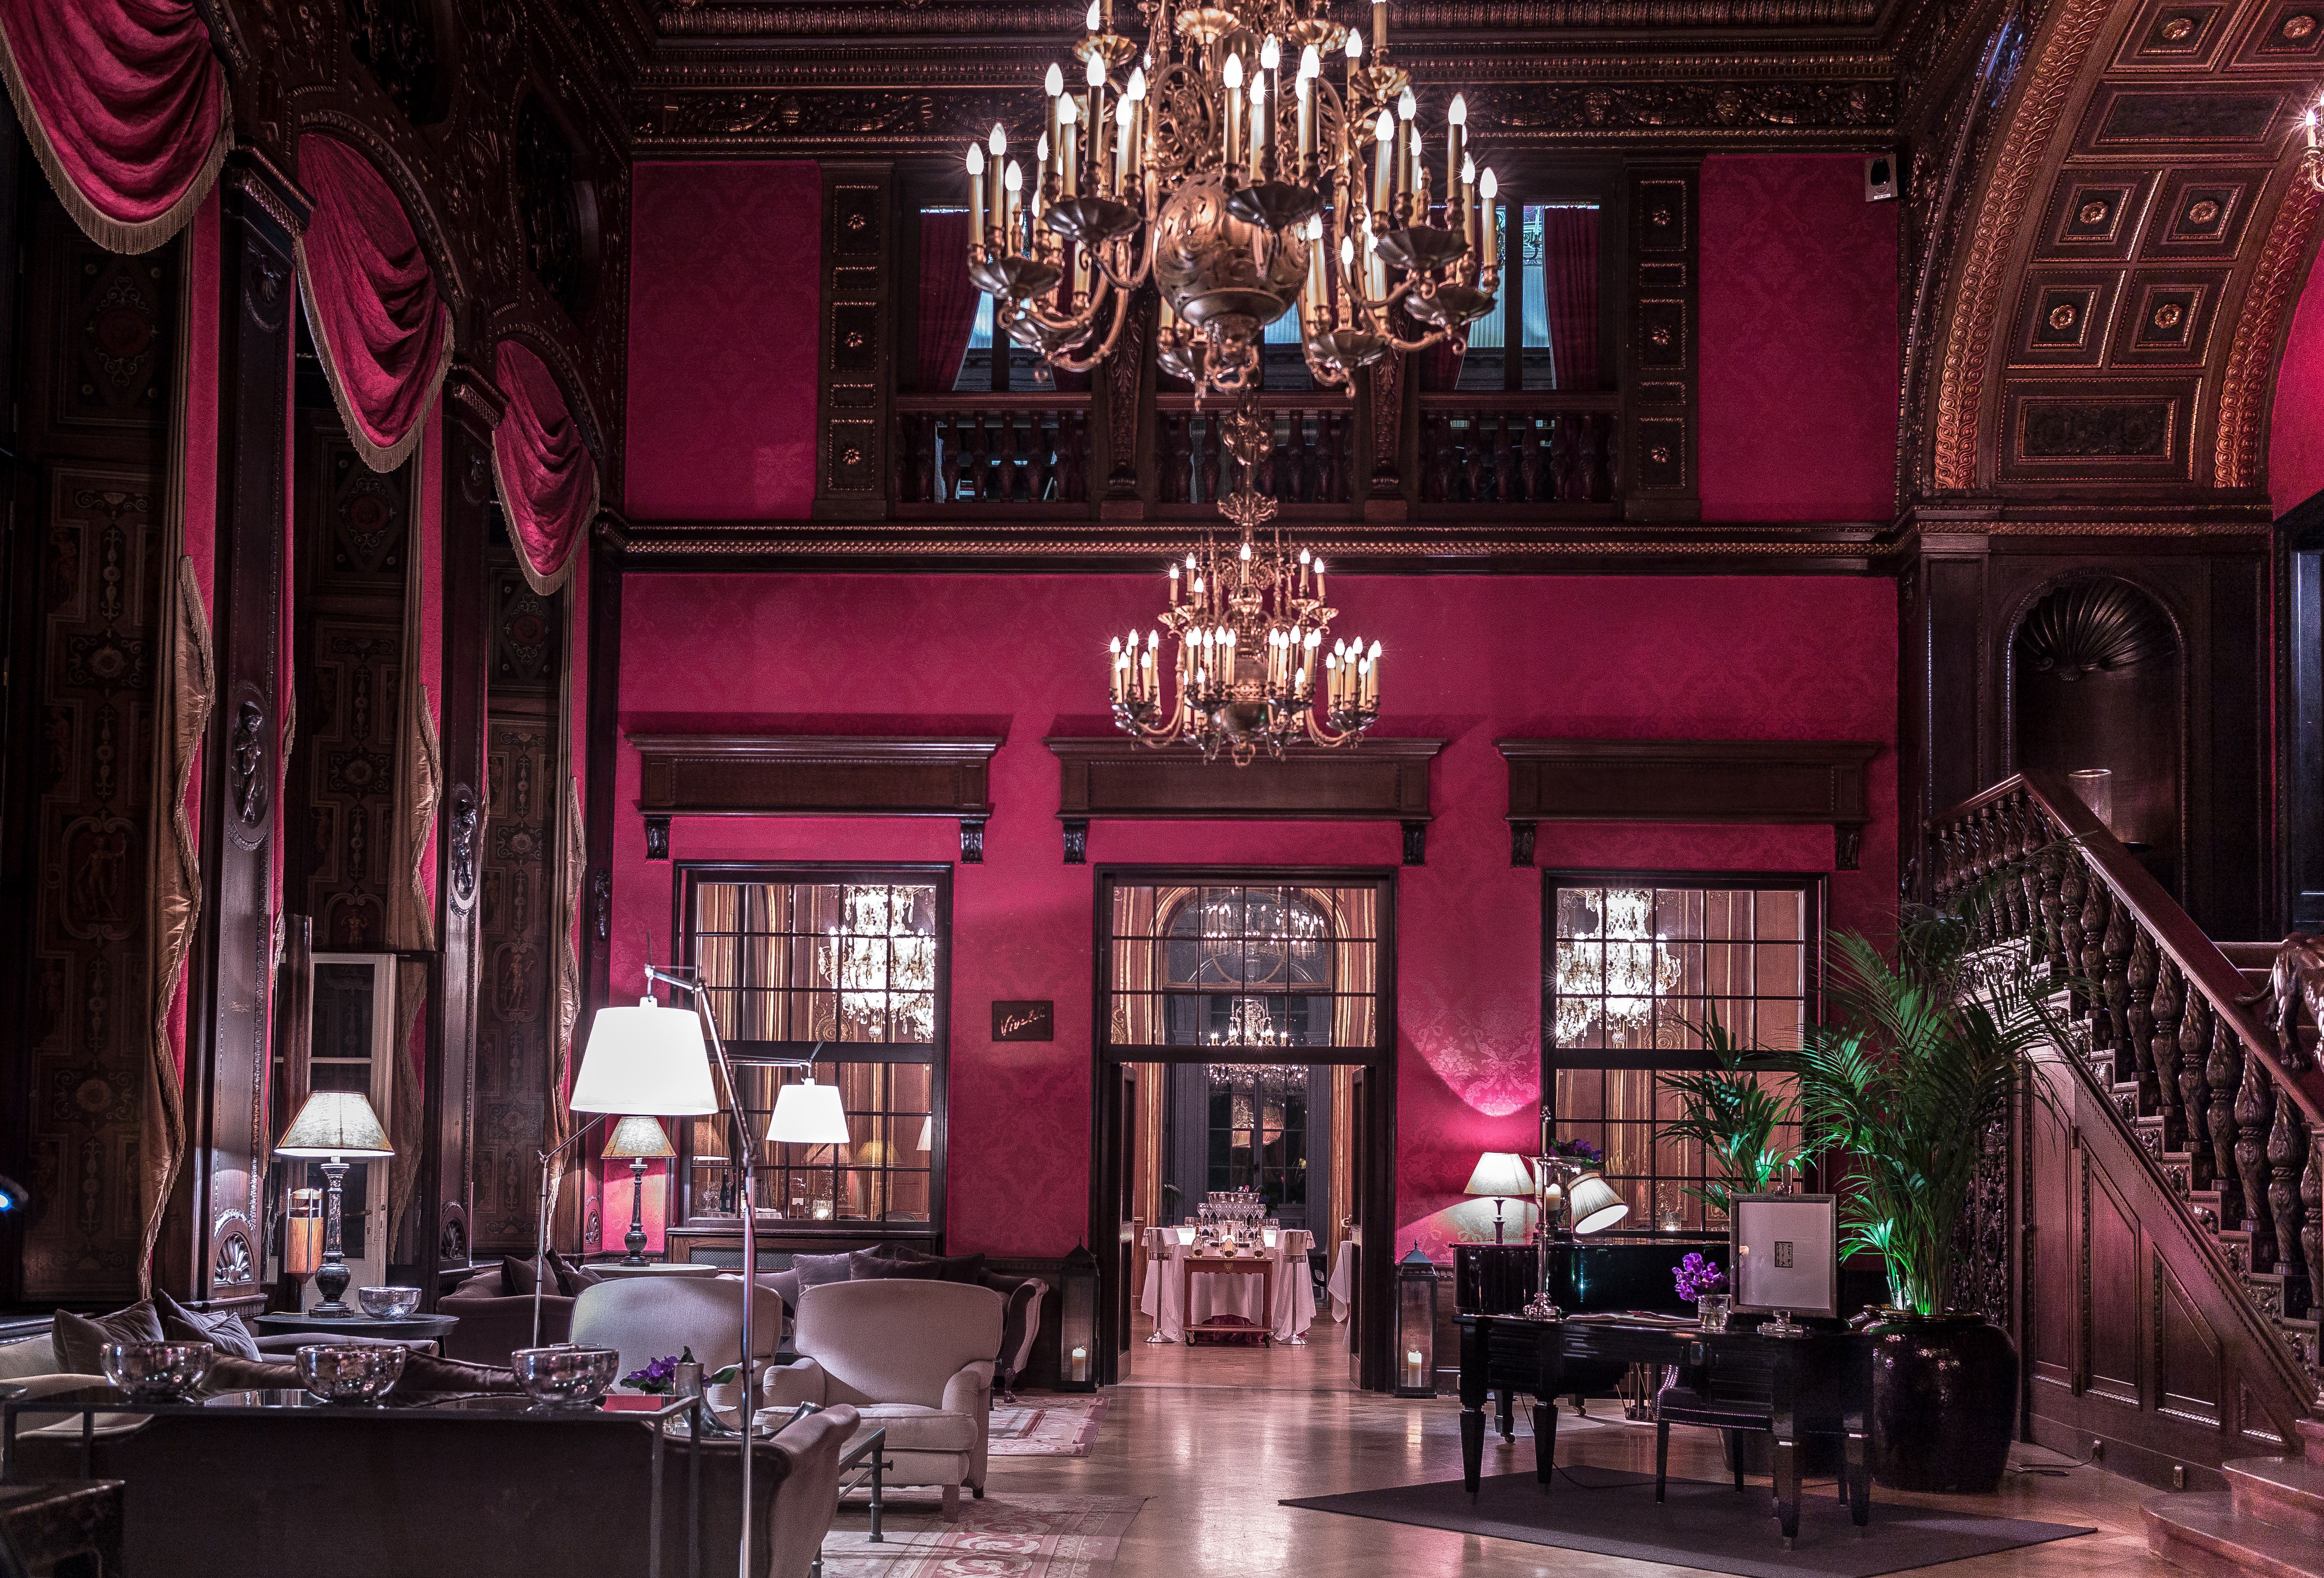 our report about @schlosshotelber from #nyptv #stunning www.ny-pamilo.tv/mediathek/travel.html